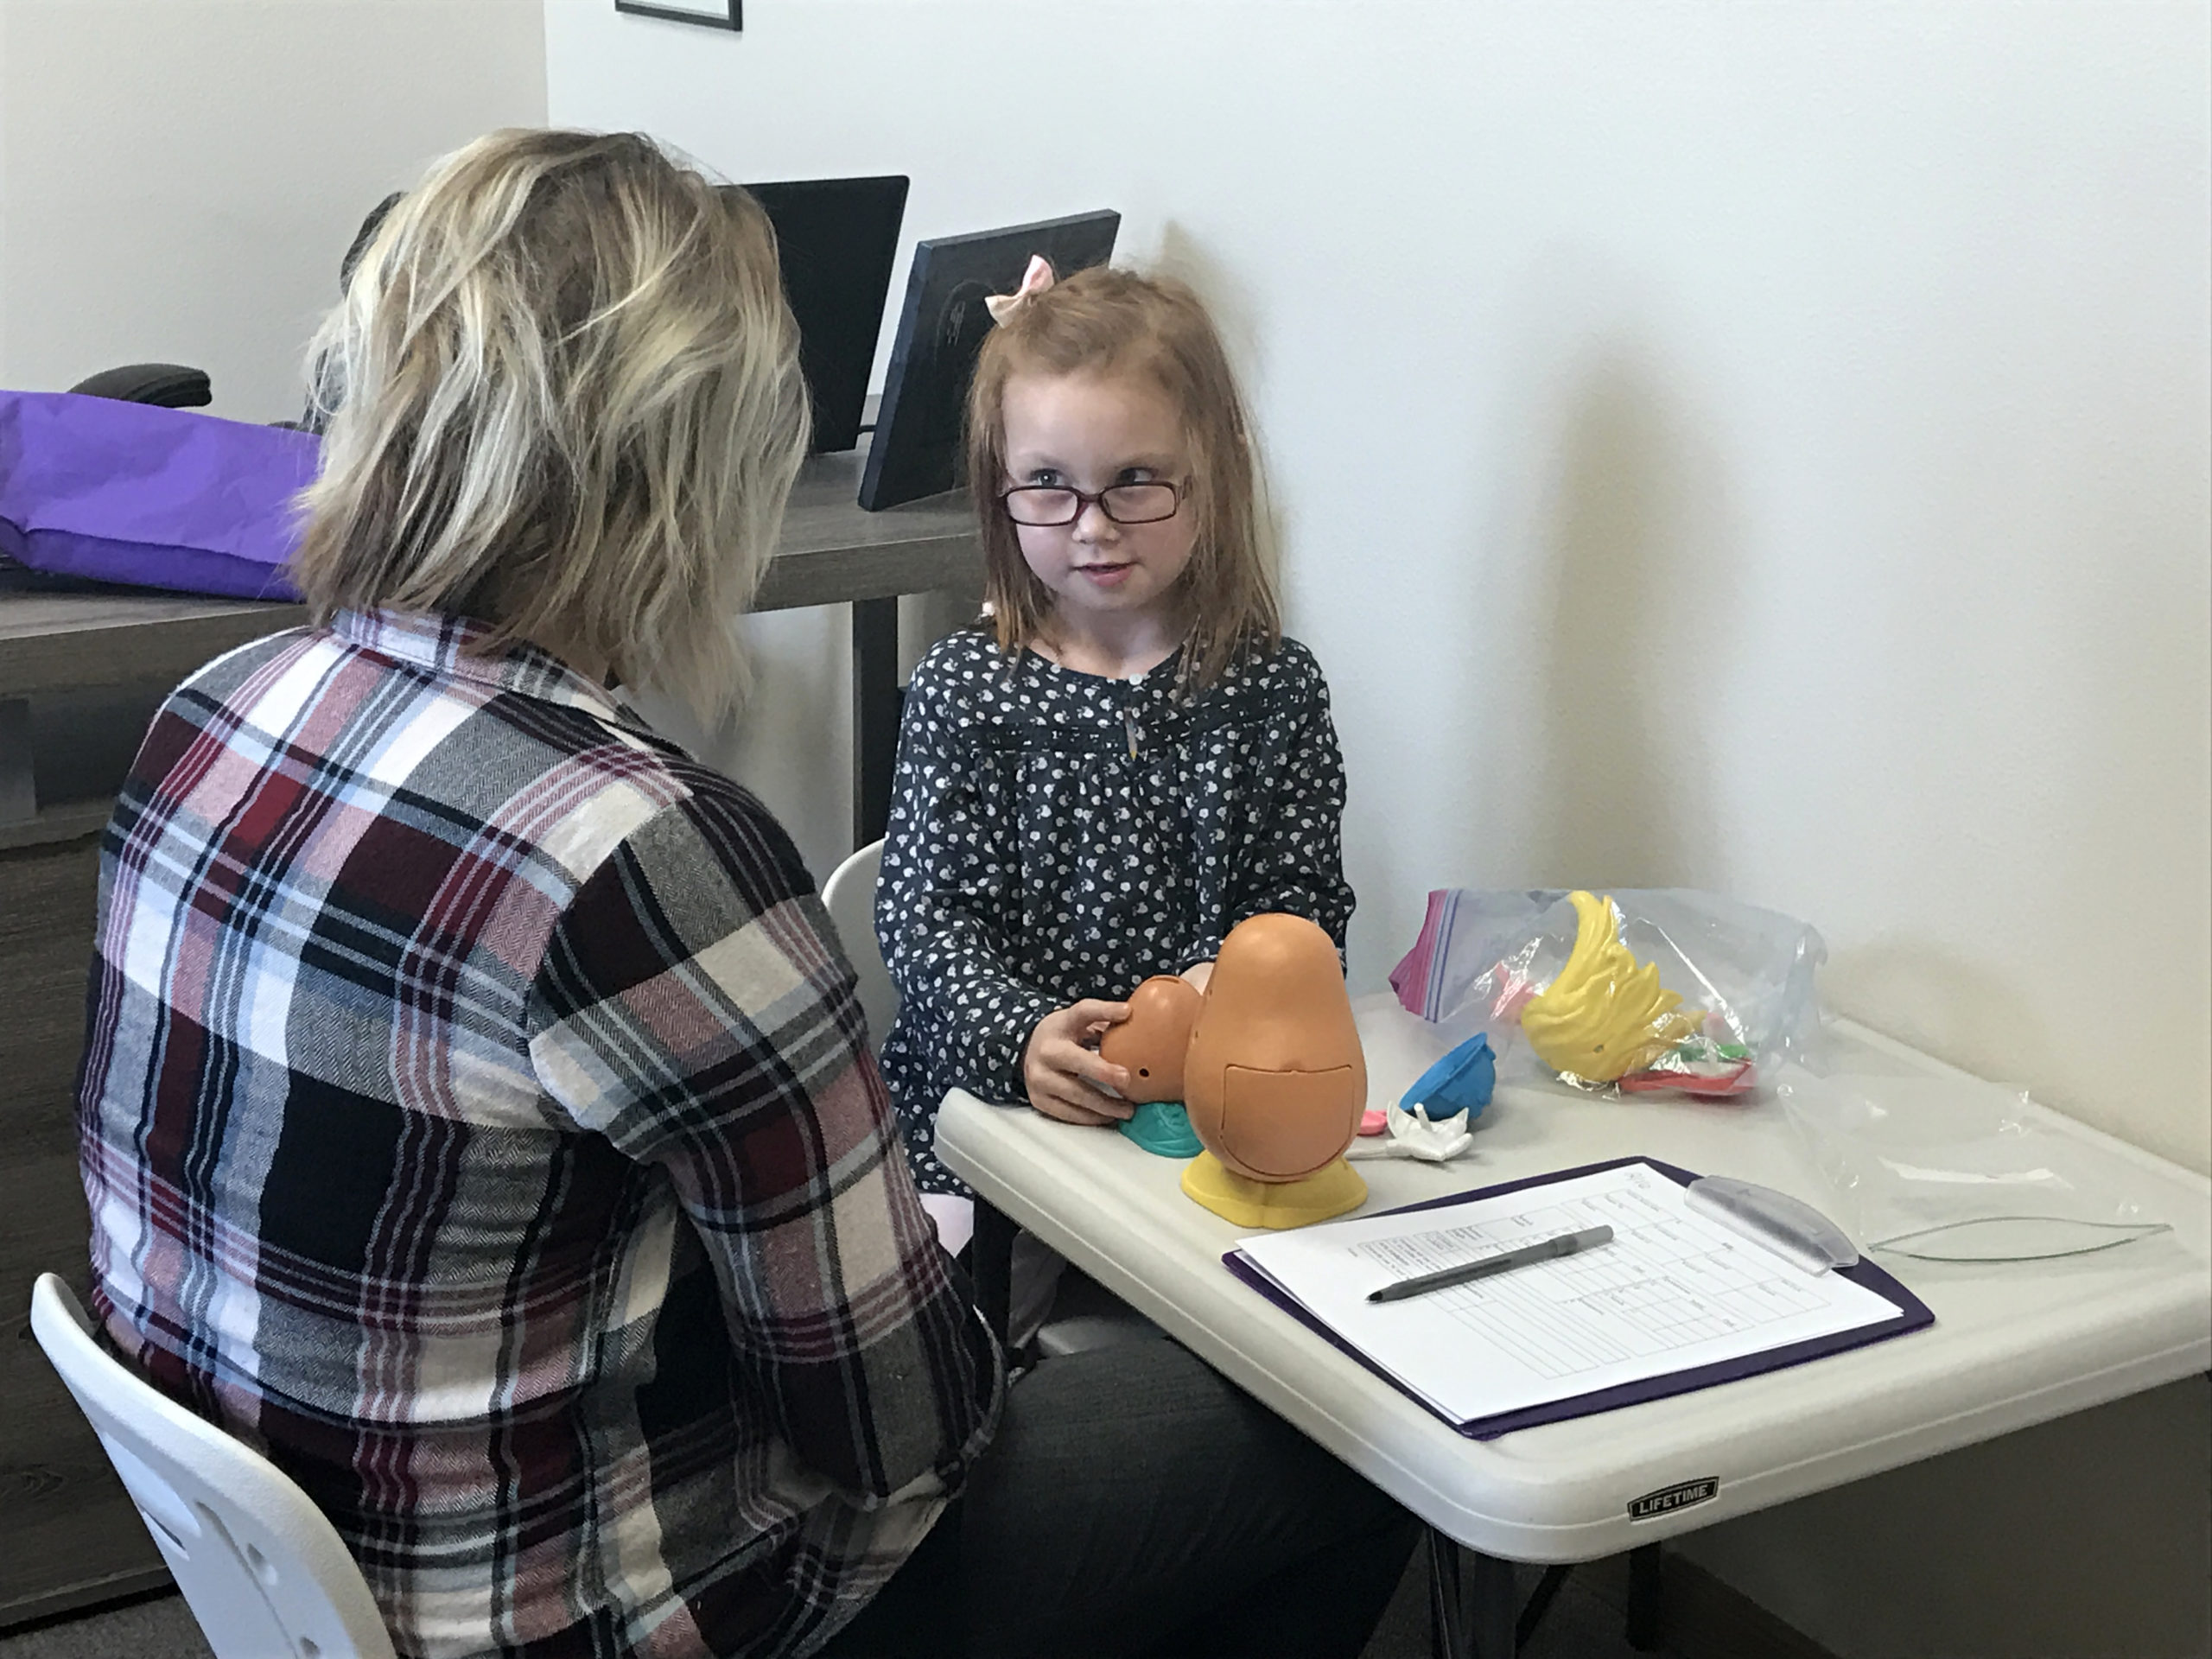 Young girl using Potato Head in speech therapy session